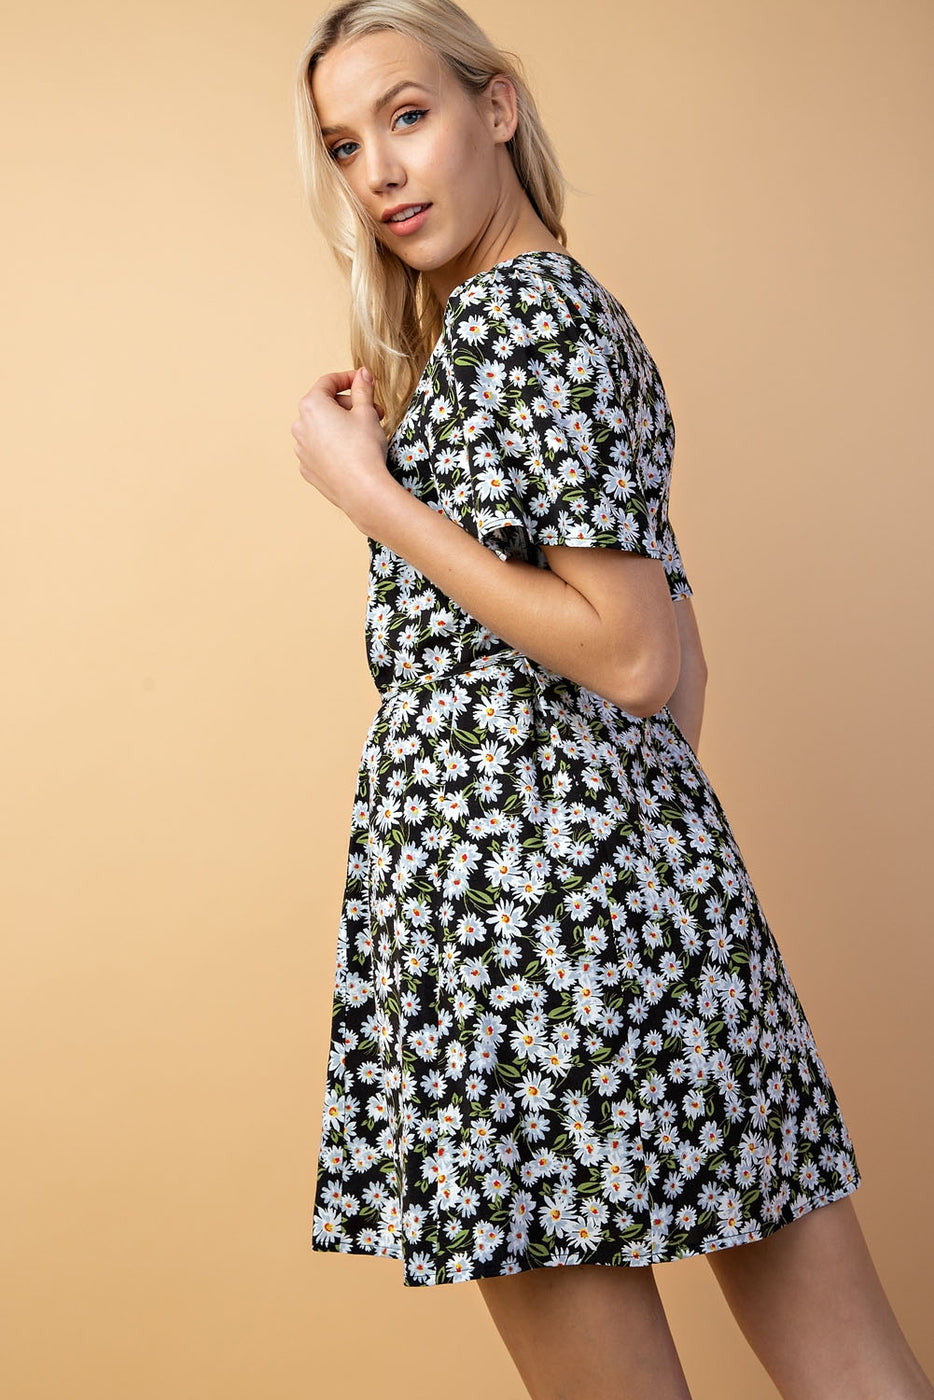 Floral Print Button Front Dress In Black-Floral Siin Bees